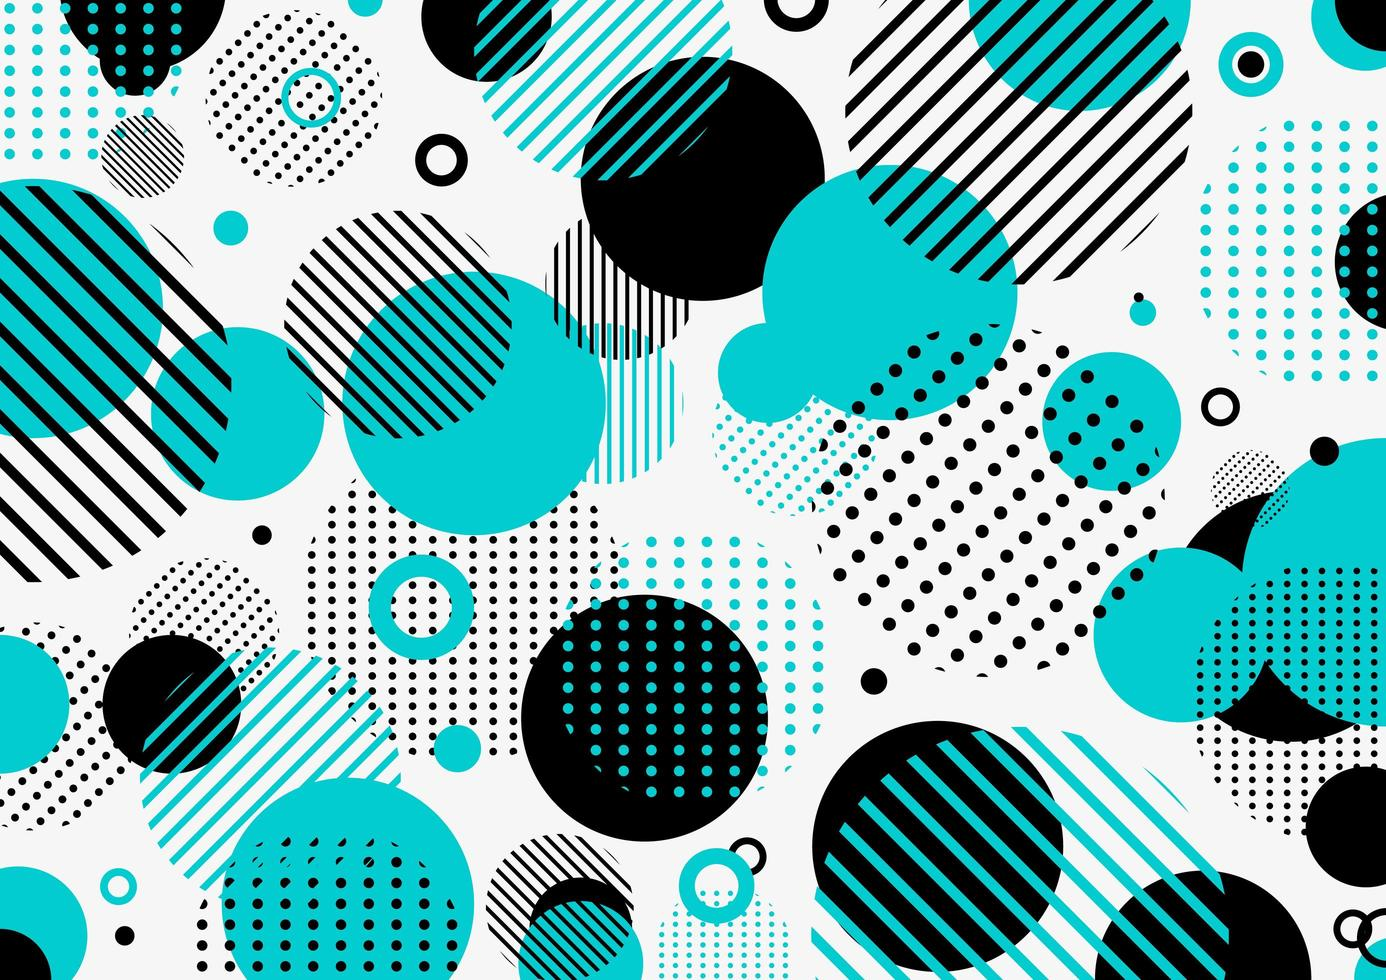 Abstract Retro 80s-90s Pattern Blue and Black Geometric Circles vector